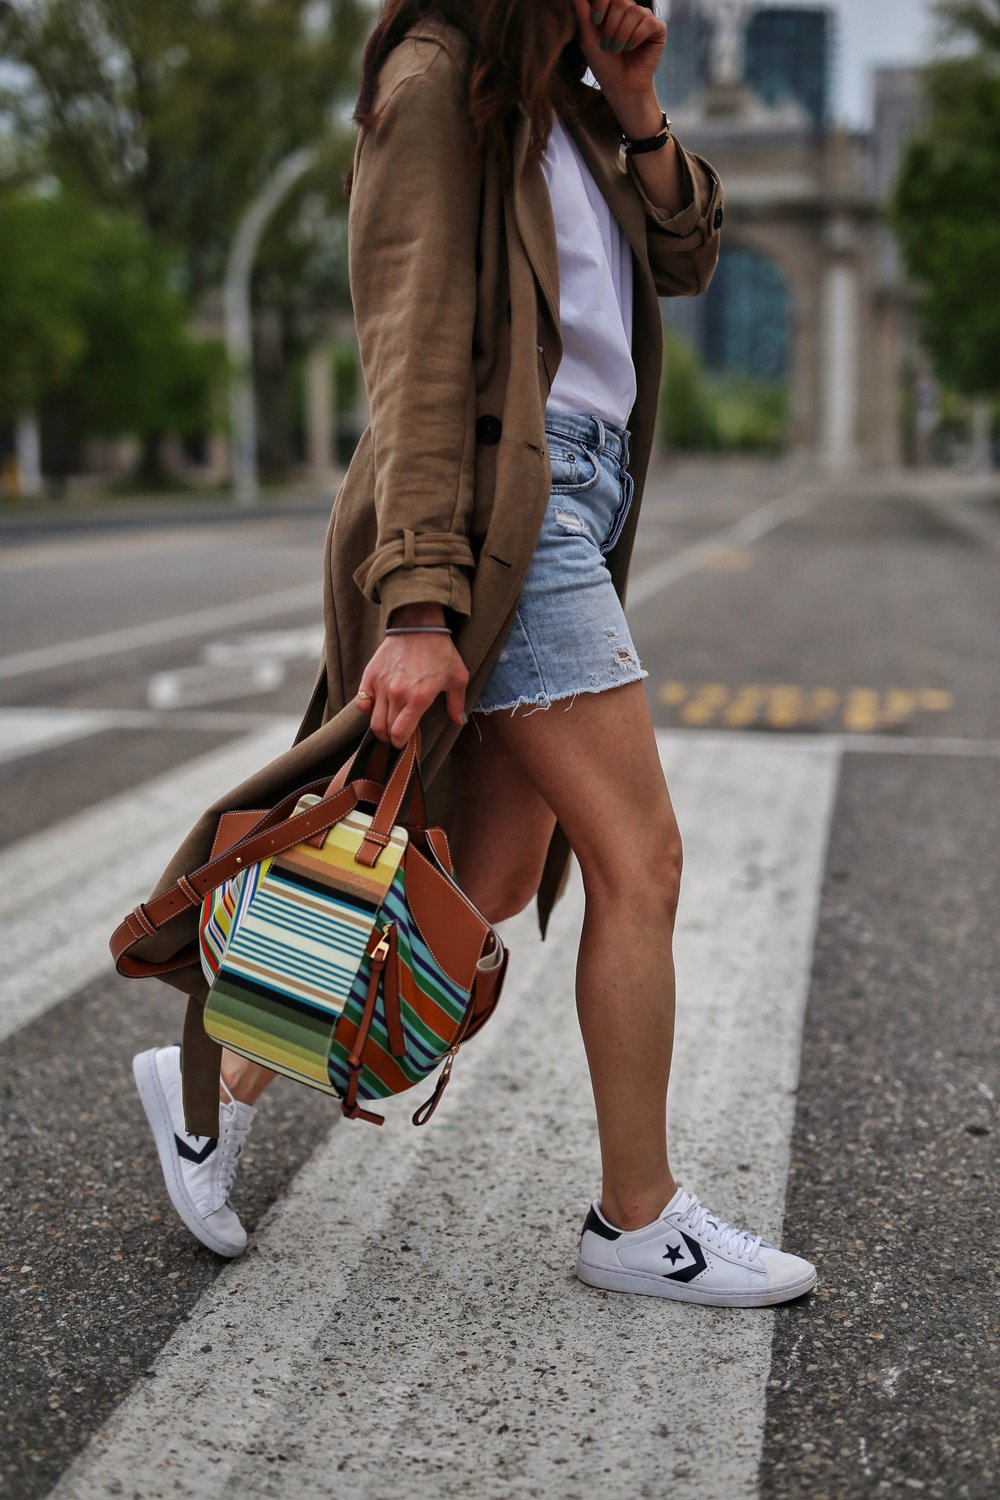 woahstyle.com 2018 - zara linen trench coat, free people cut off shorts, converse one stars, loewe striped small hammock bag, white button up shirt - toronto street style - hotel x - nathalie martin 13.jpg